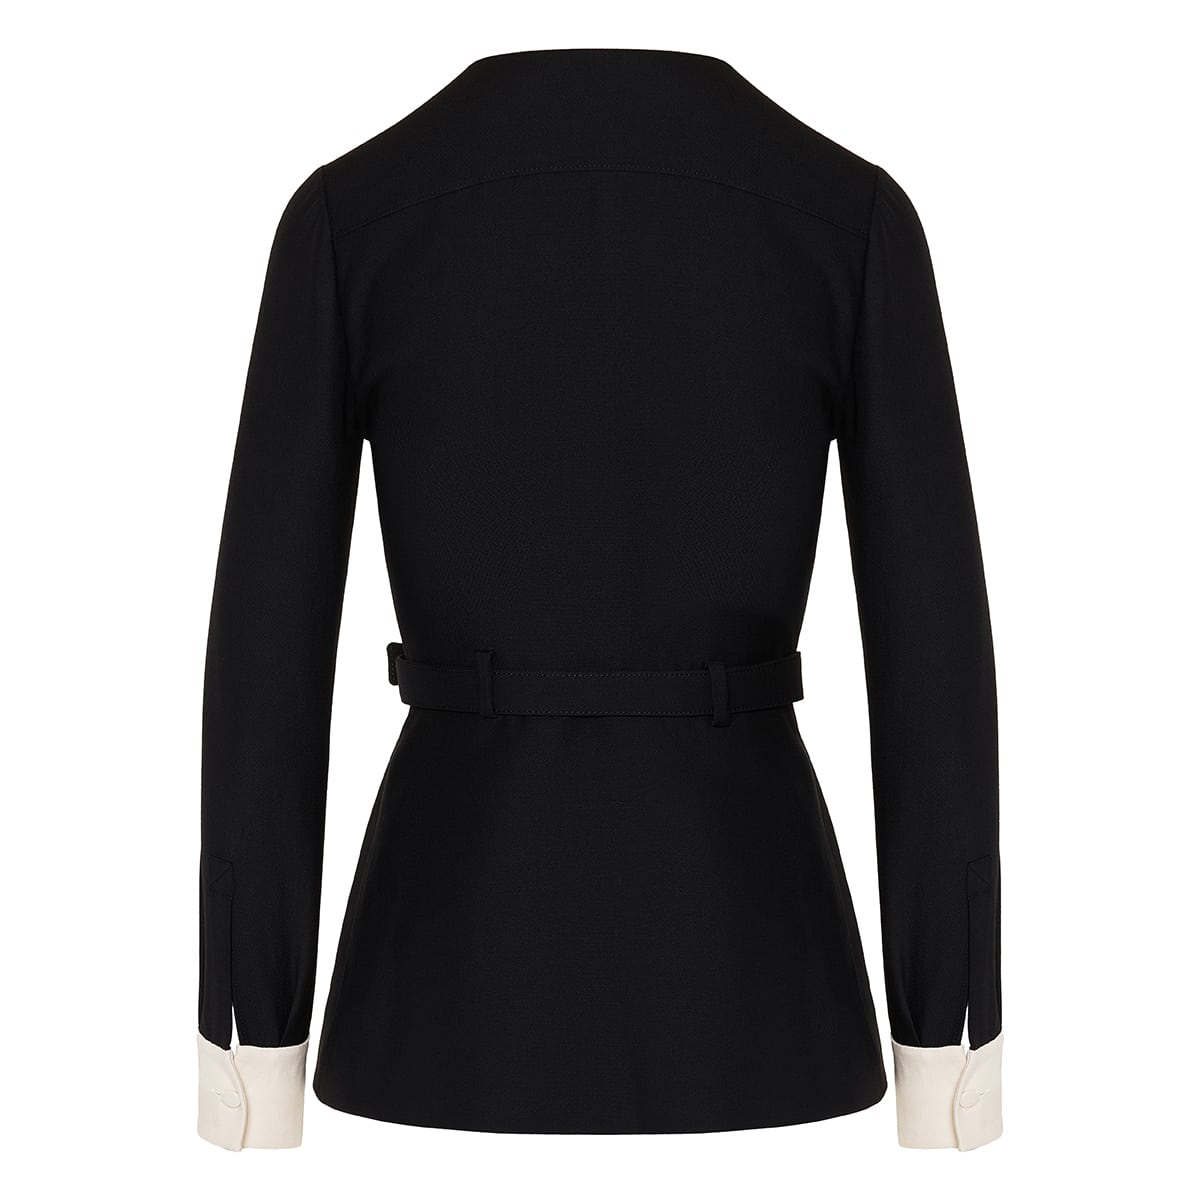 Vlogo two-tone belted crepe top